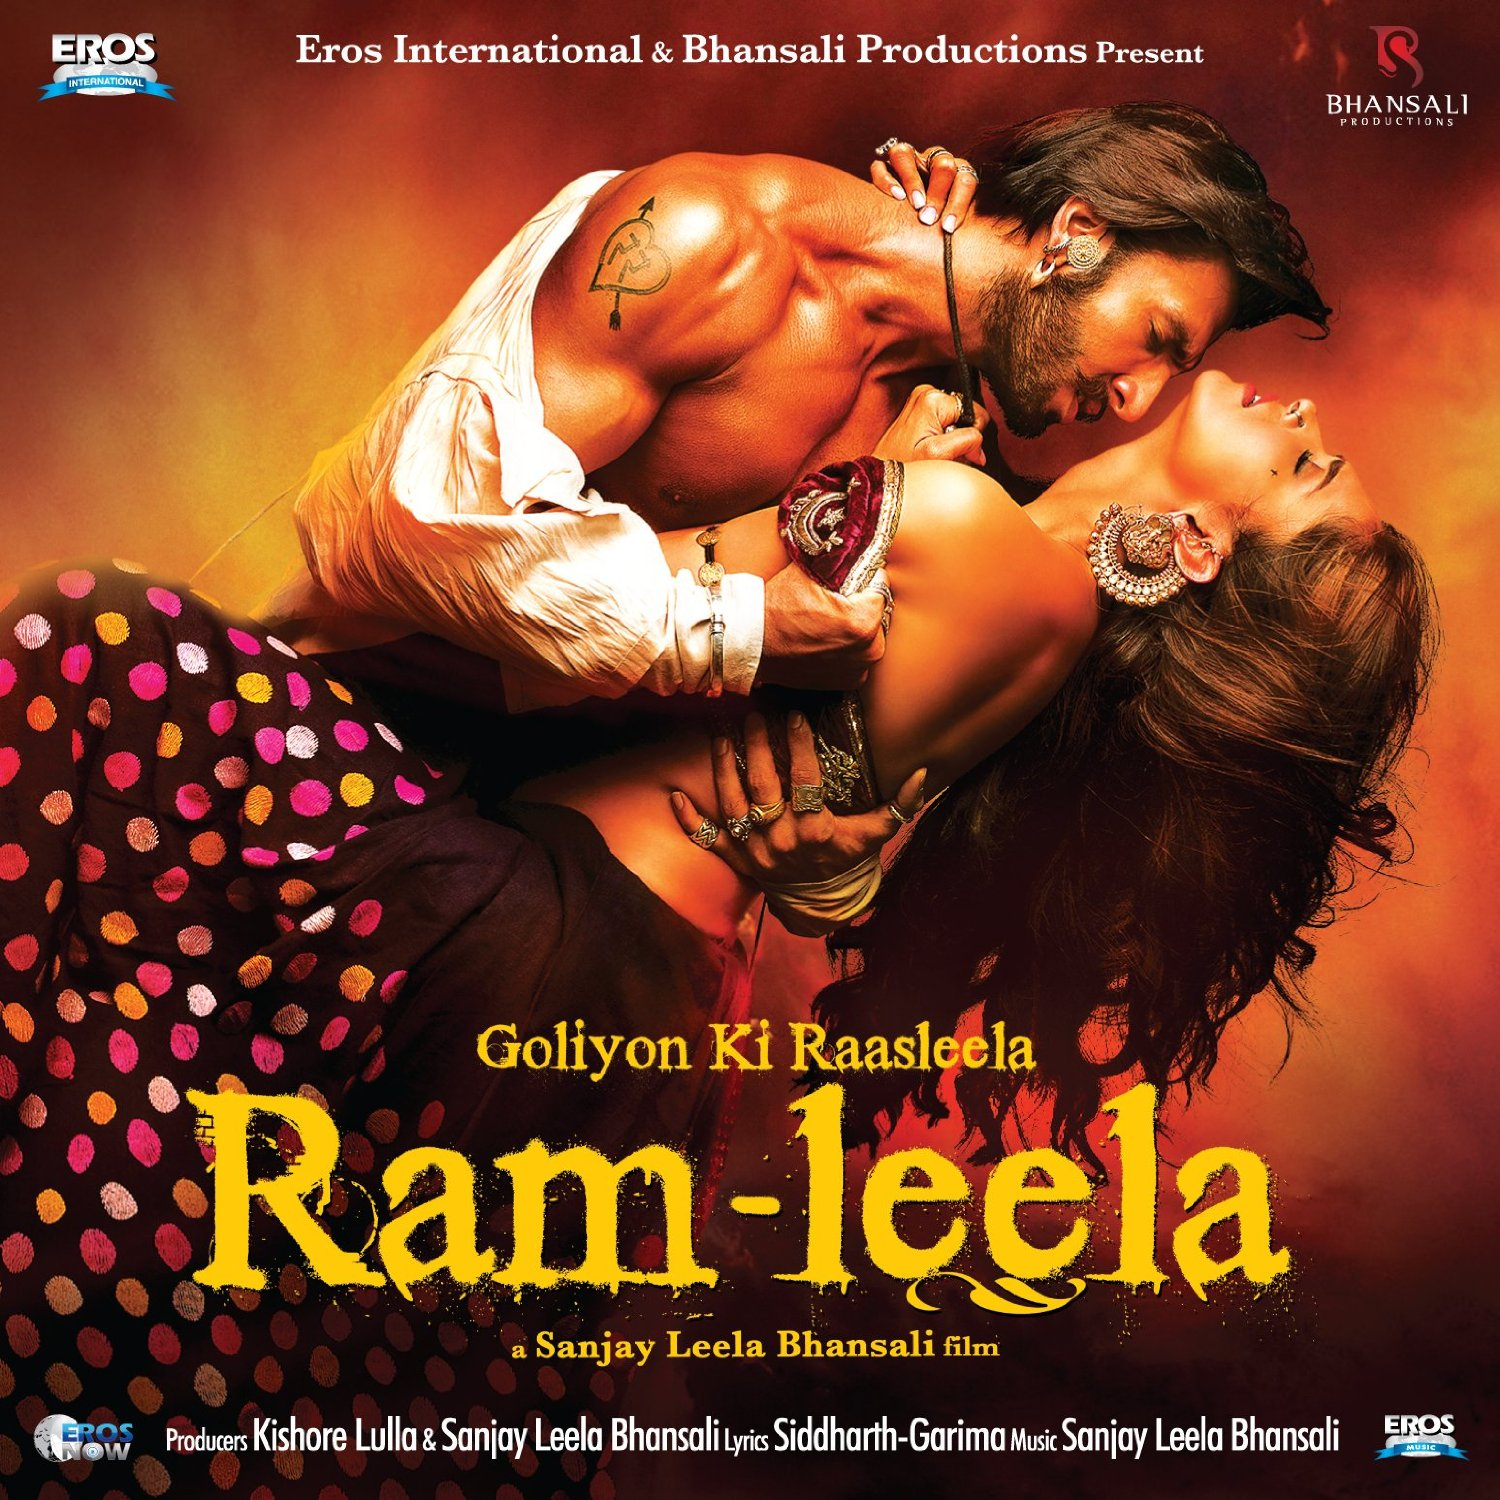 Check out the Movies rejected By Kareena Kapoor Khan which are hard to believe- Ram Leela